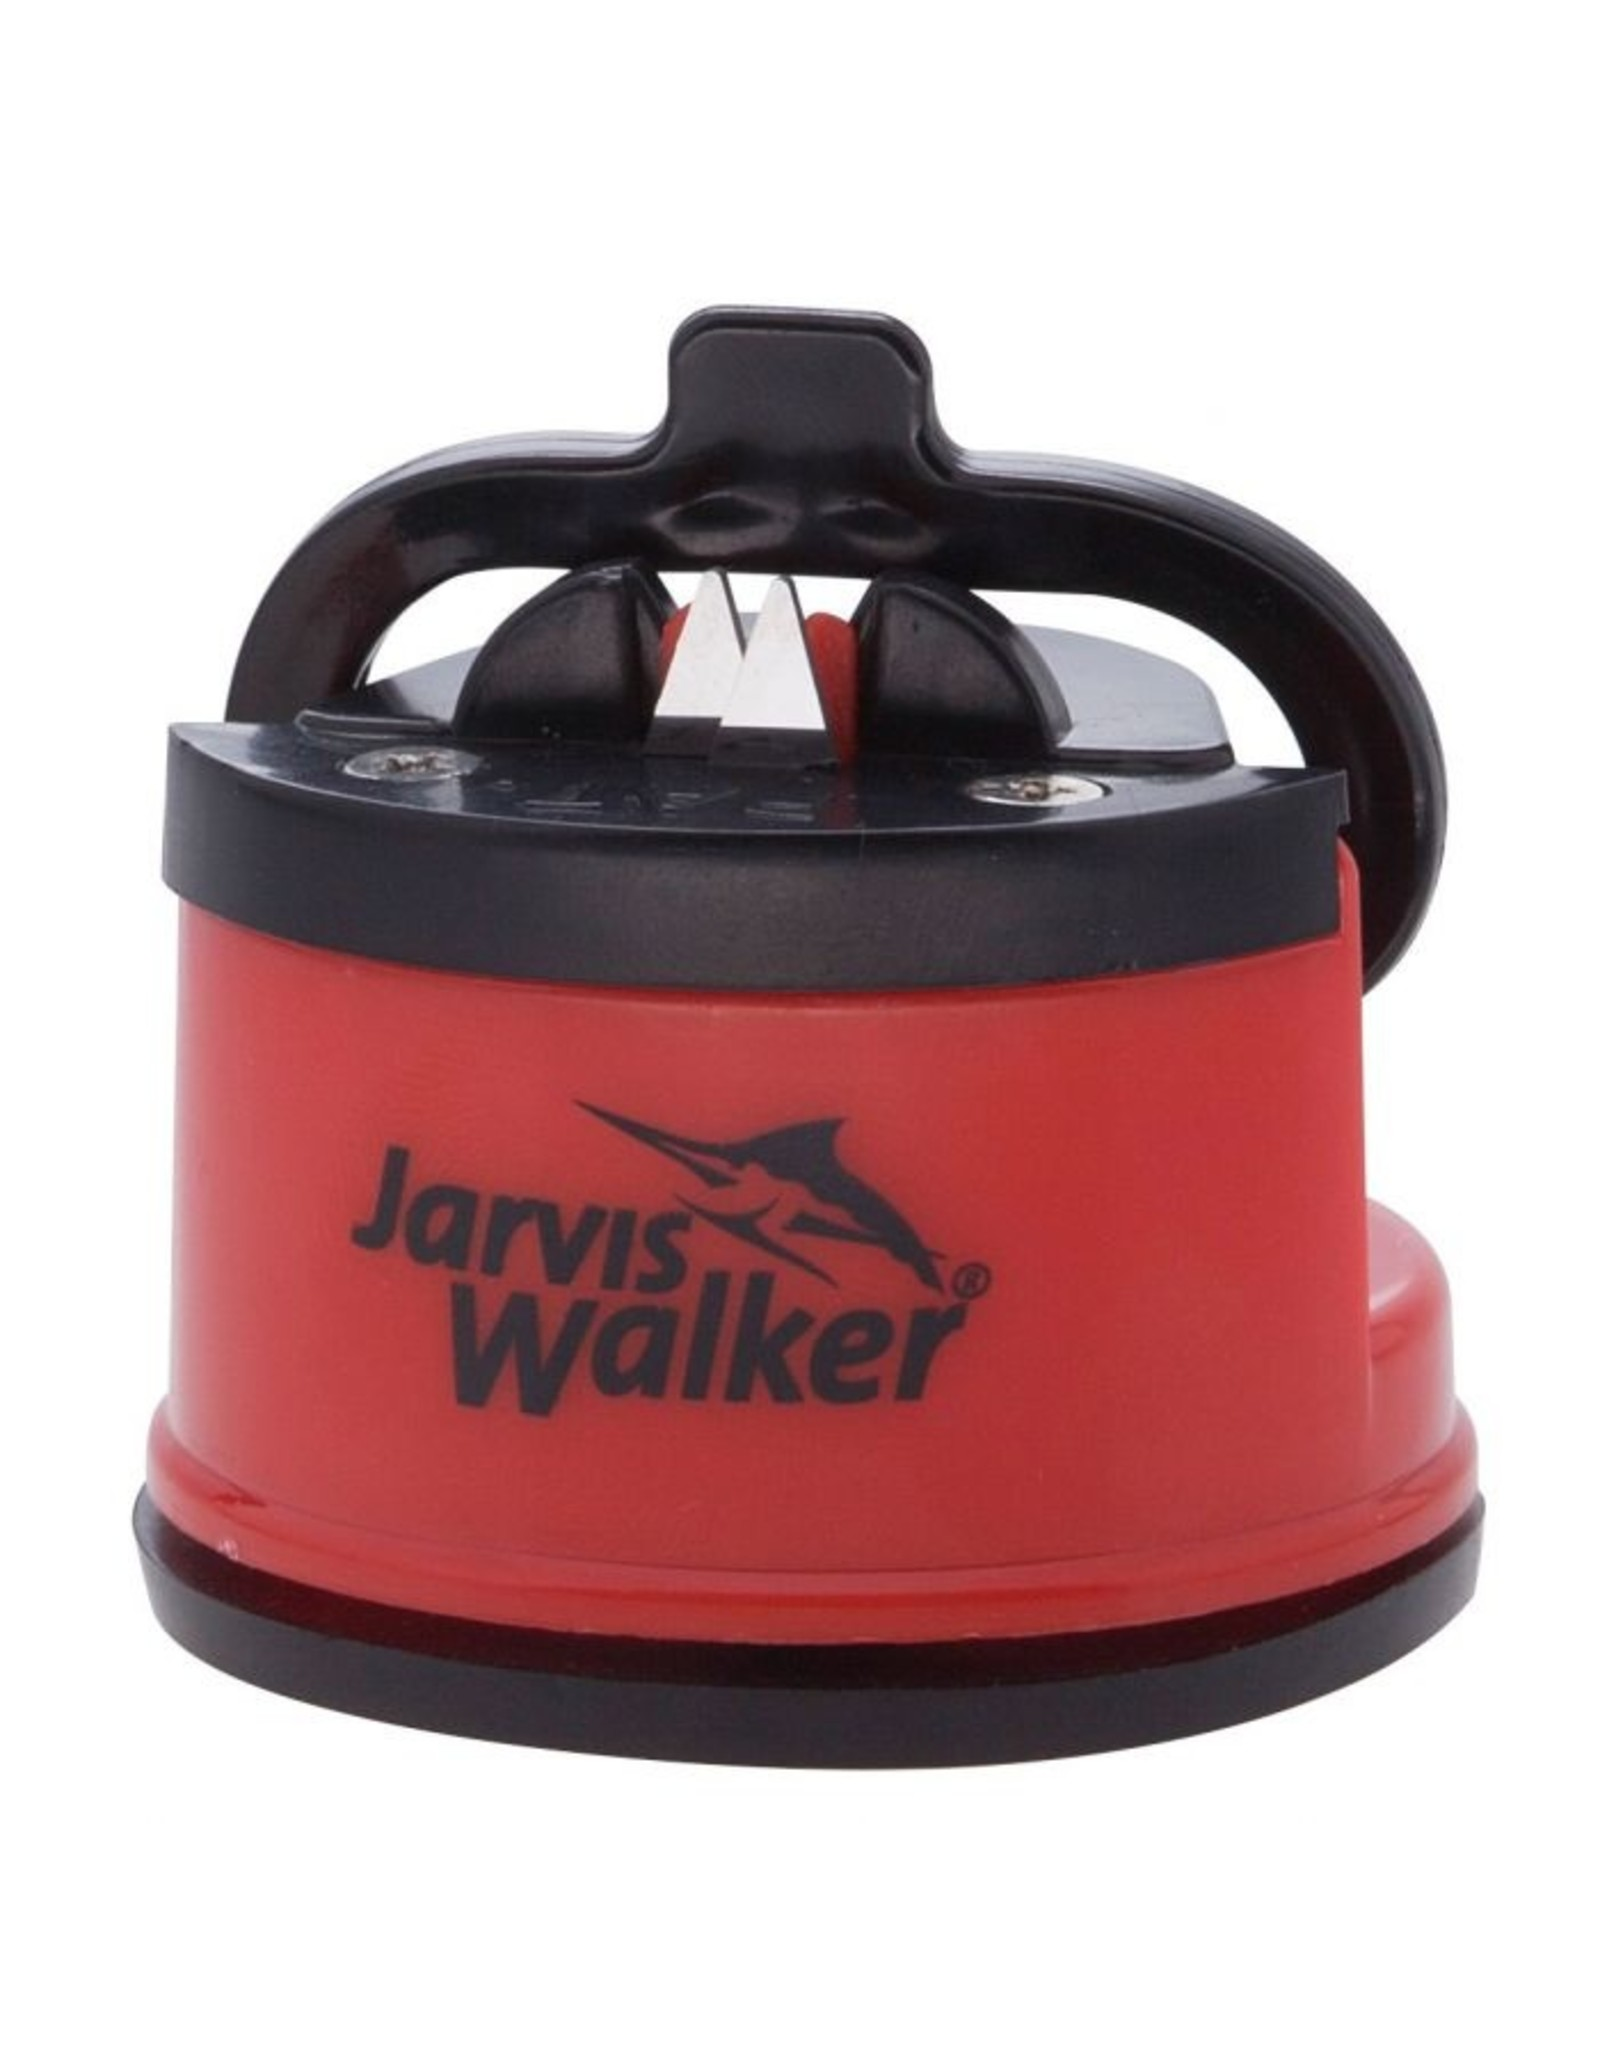 Masterline Jarvis Walker Knife Sharpener